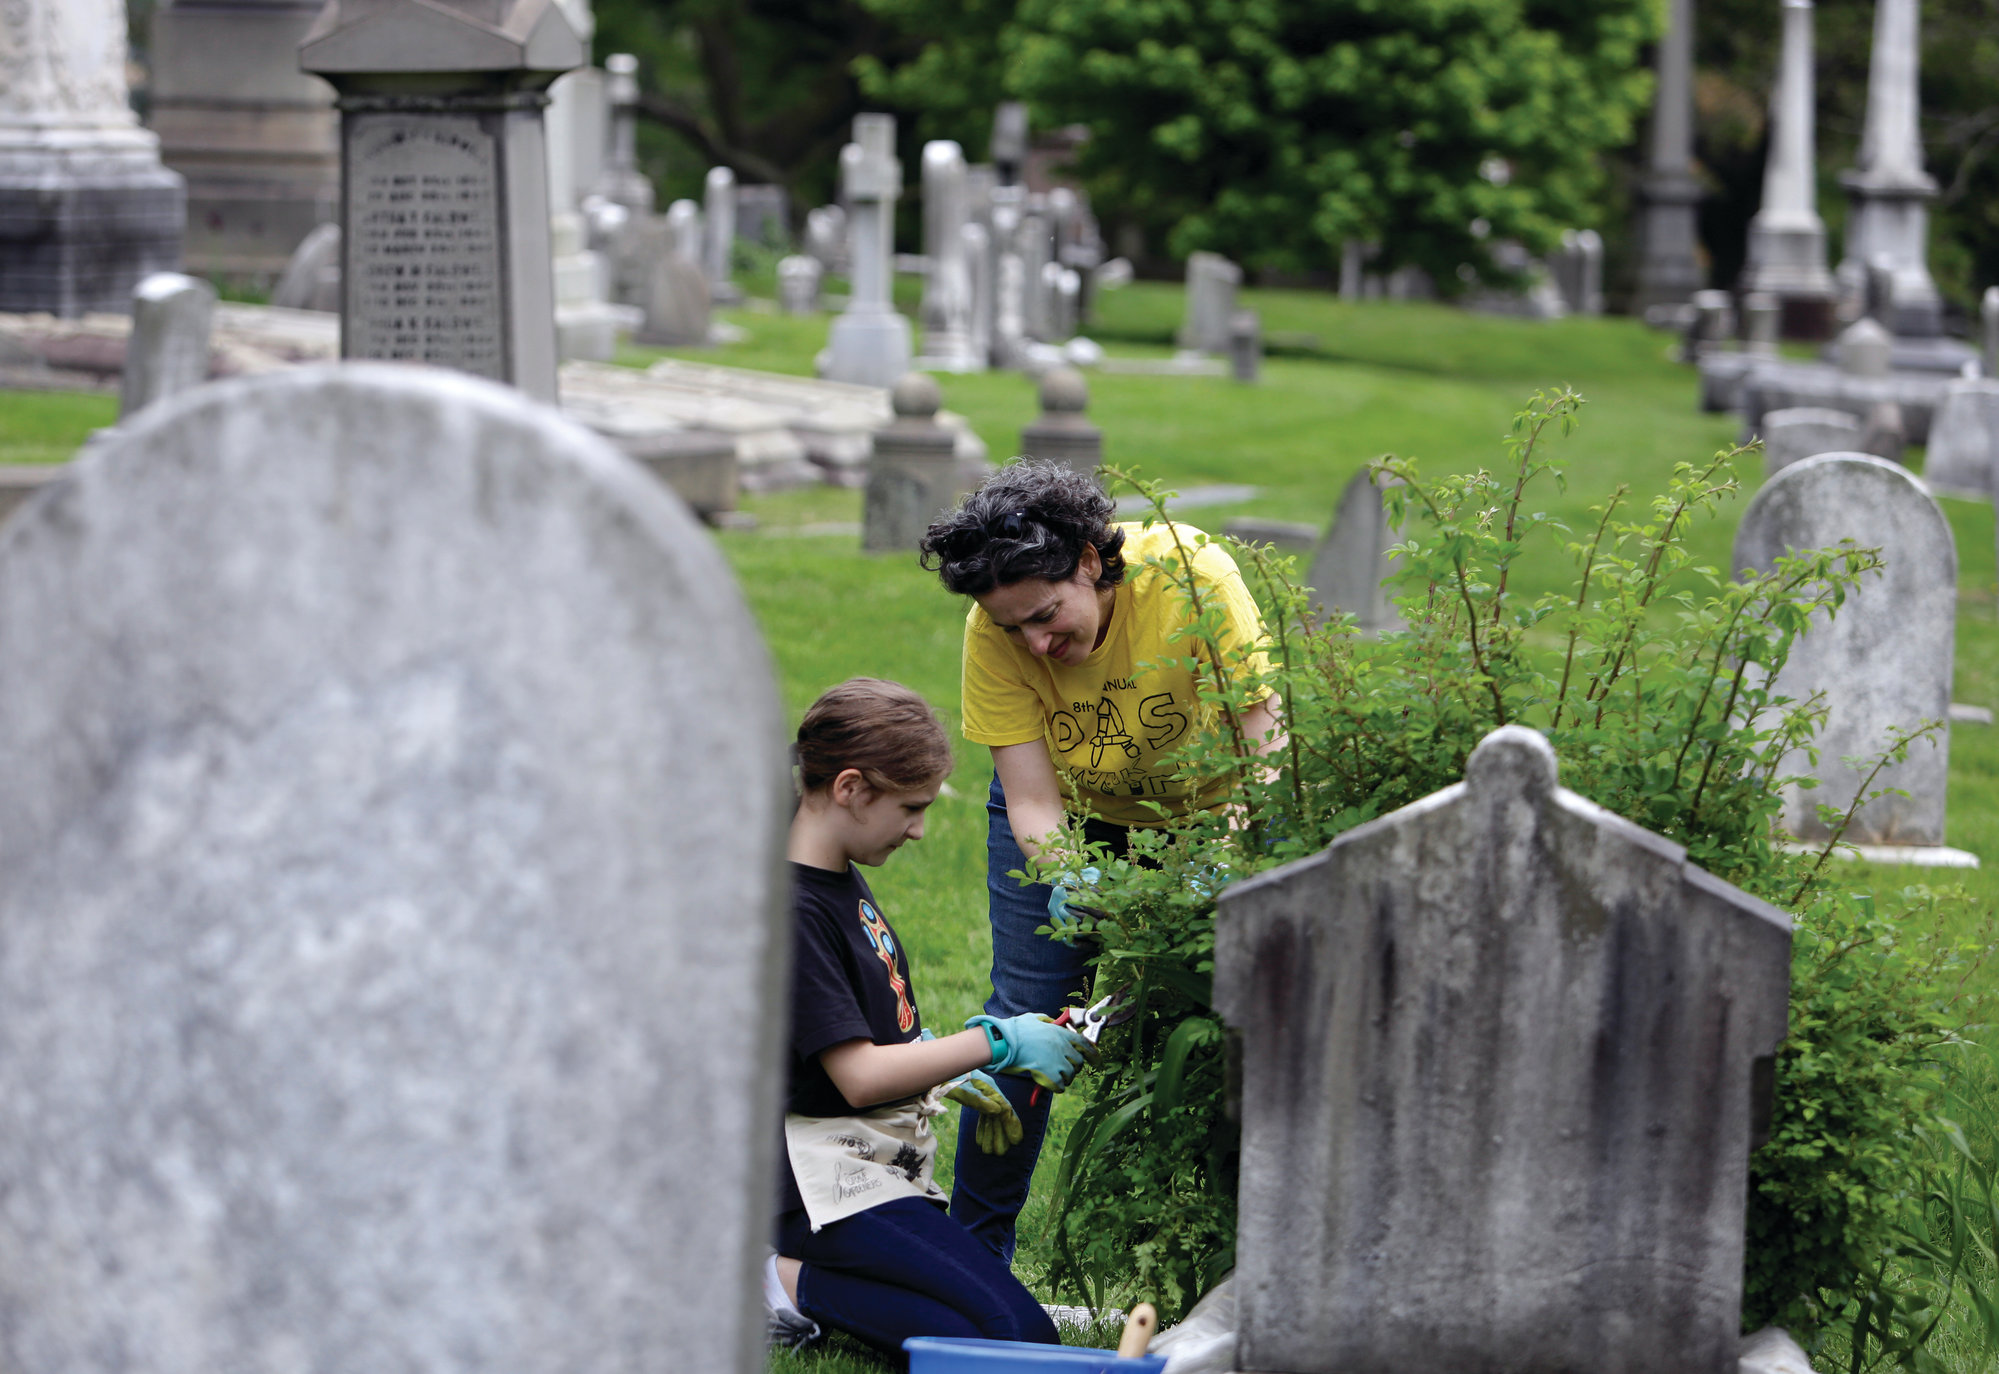 PHOTOS BY THE ASSOCIATED PRESS  Celina Gray, right, and her daughter Kalliope Kourelis, trim a rose bush growing on the cradle grave of Mary Glenn recently at the Woodlands Cemetery in Philadelphia.